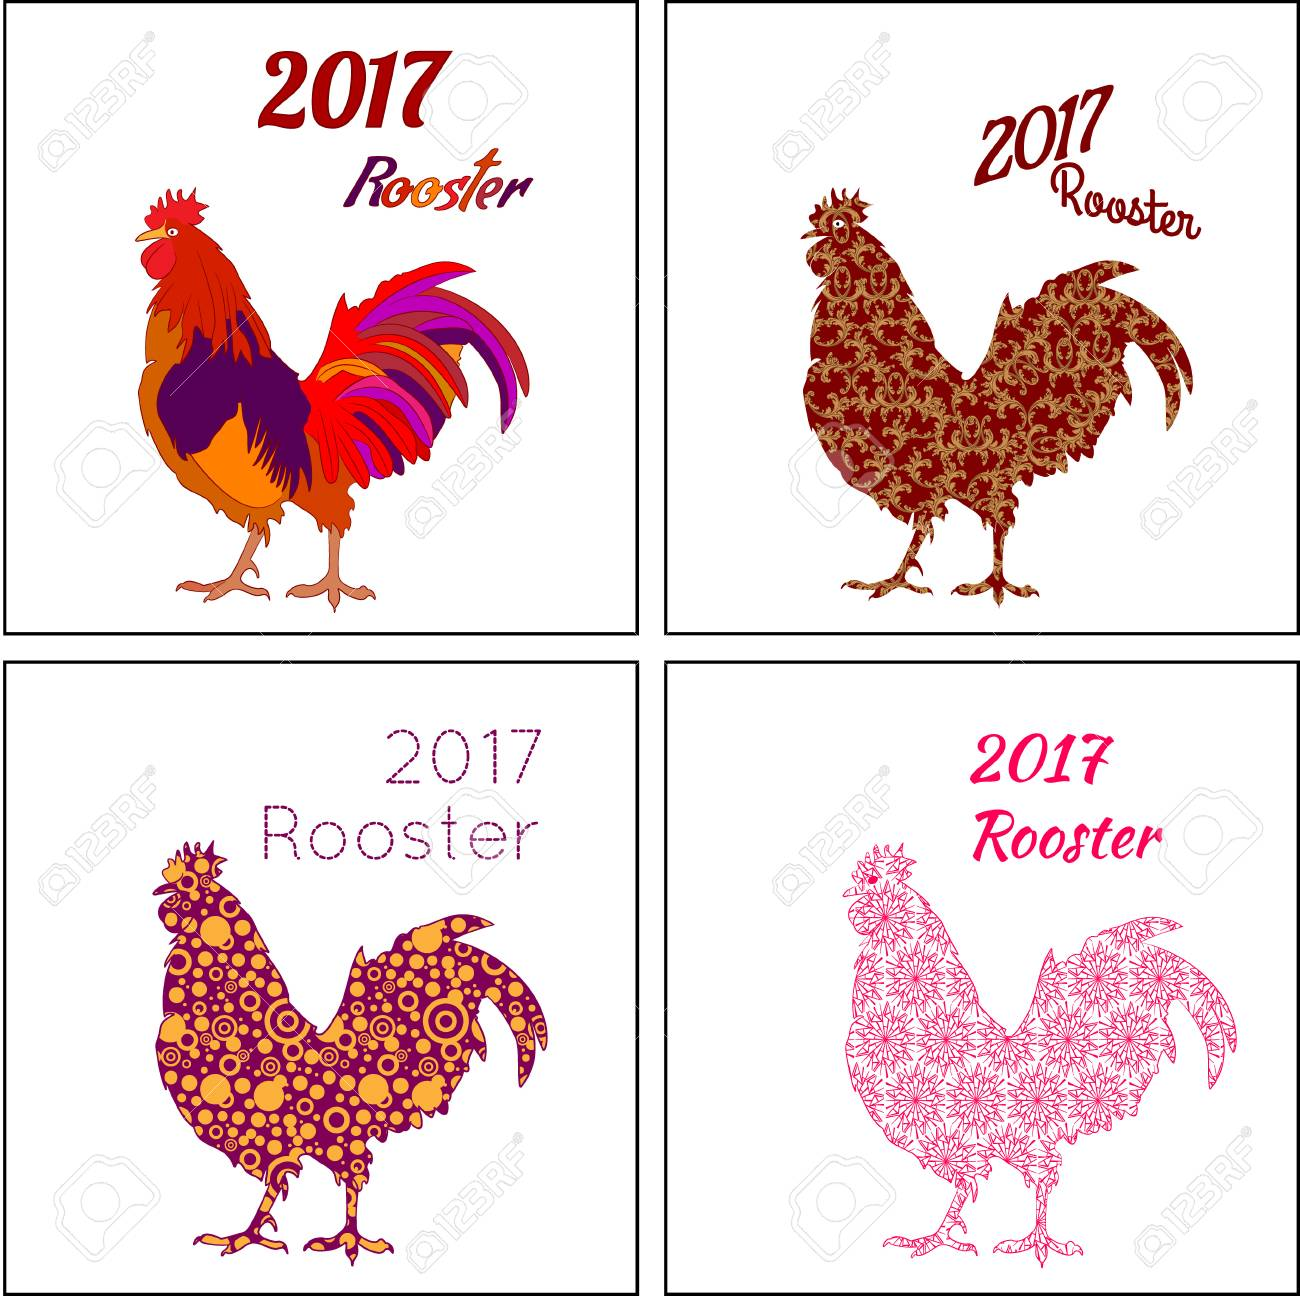 2017 New Year With Chinese Symbol Of Rooster New Year Vector